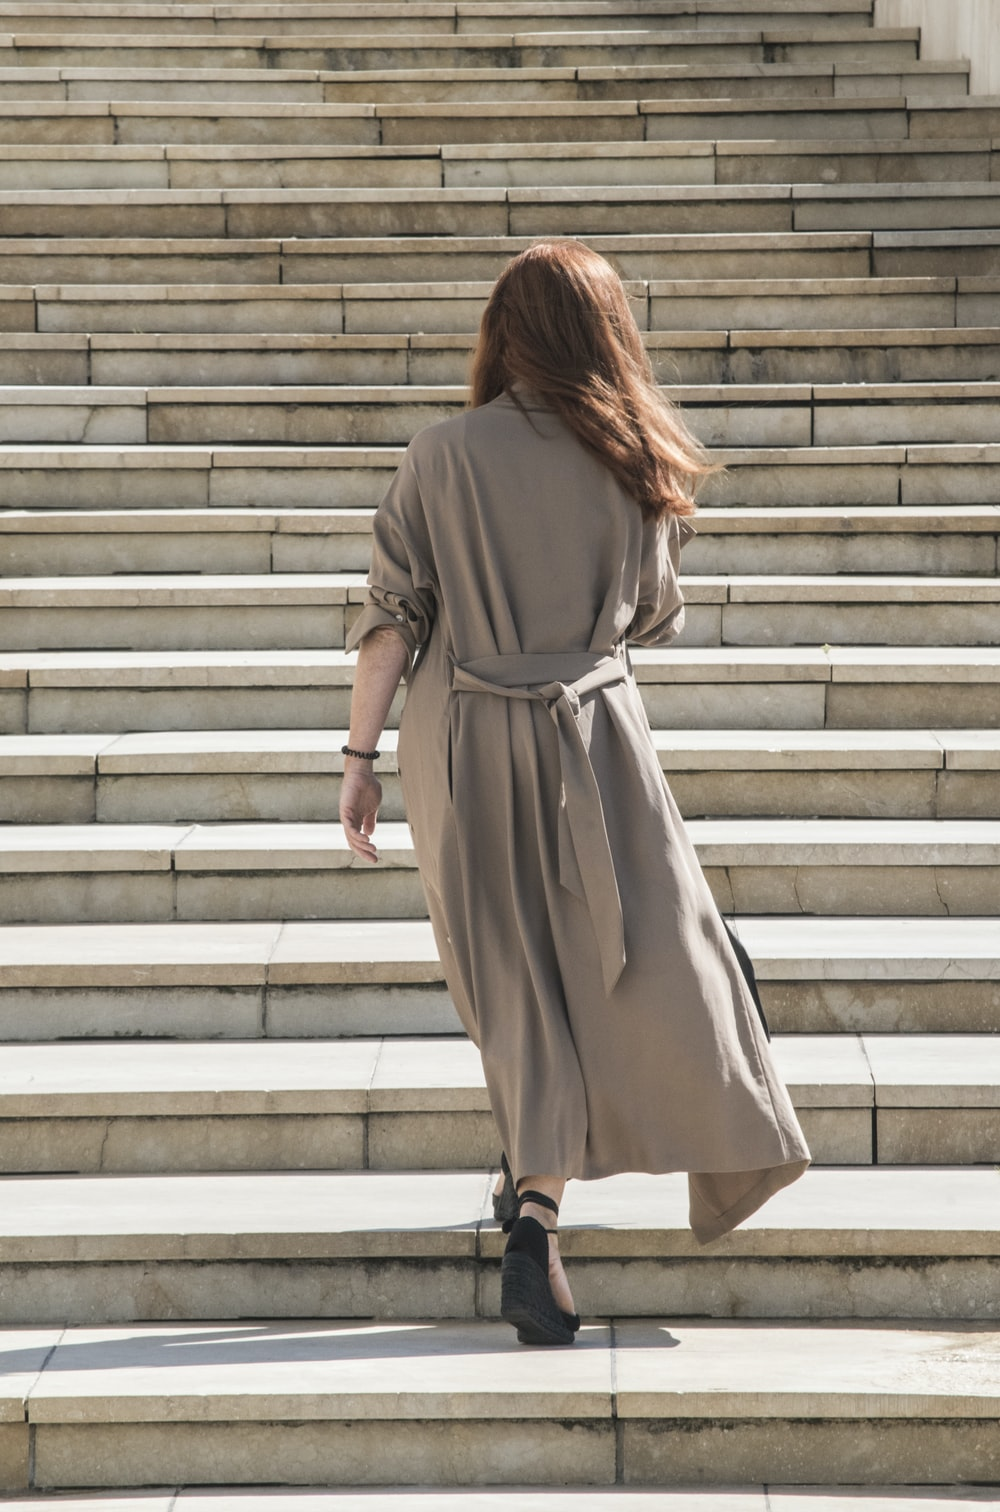 woman in brown long sleeve dress walking on white concrete stairs